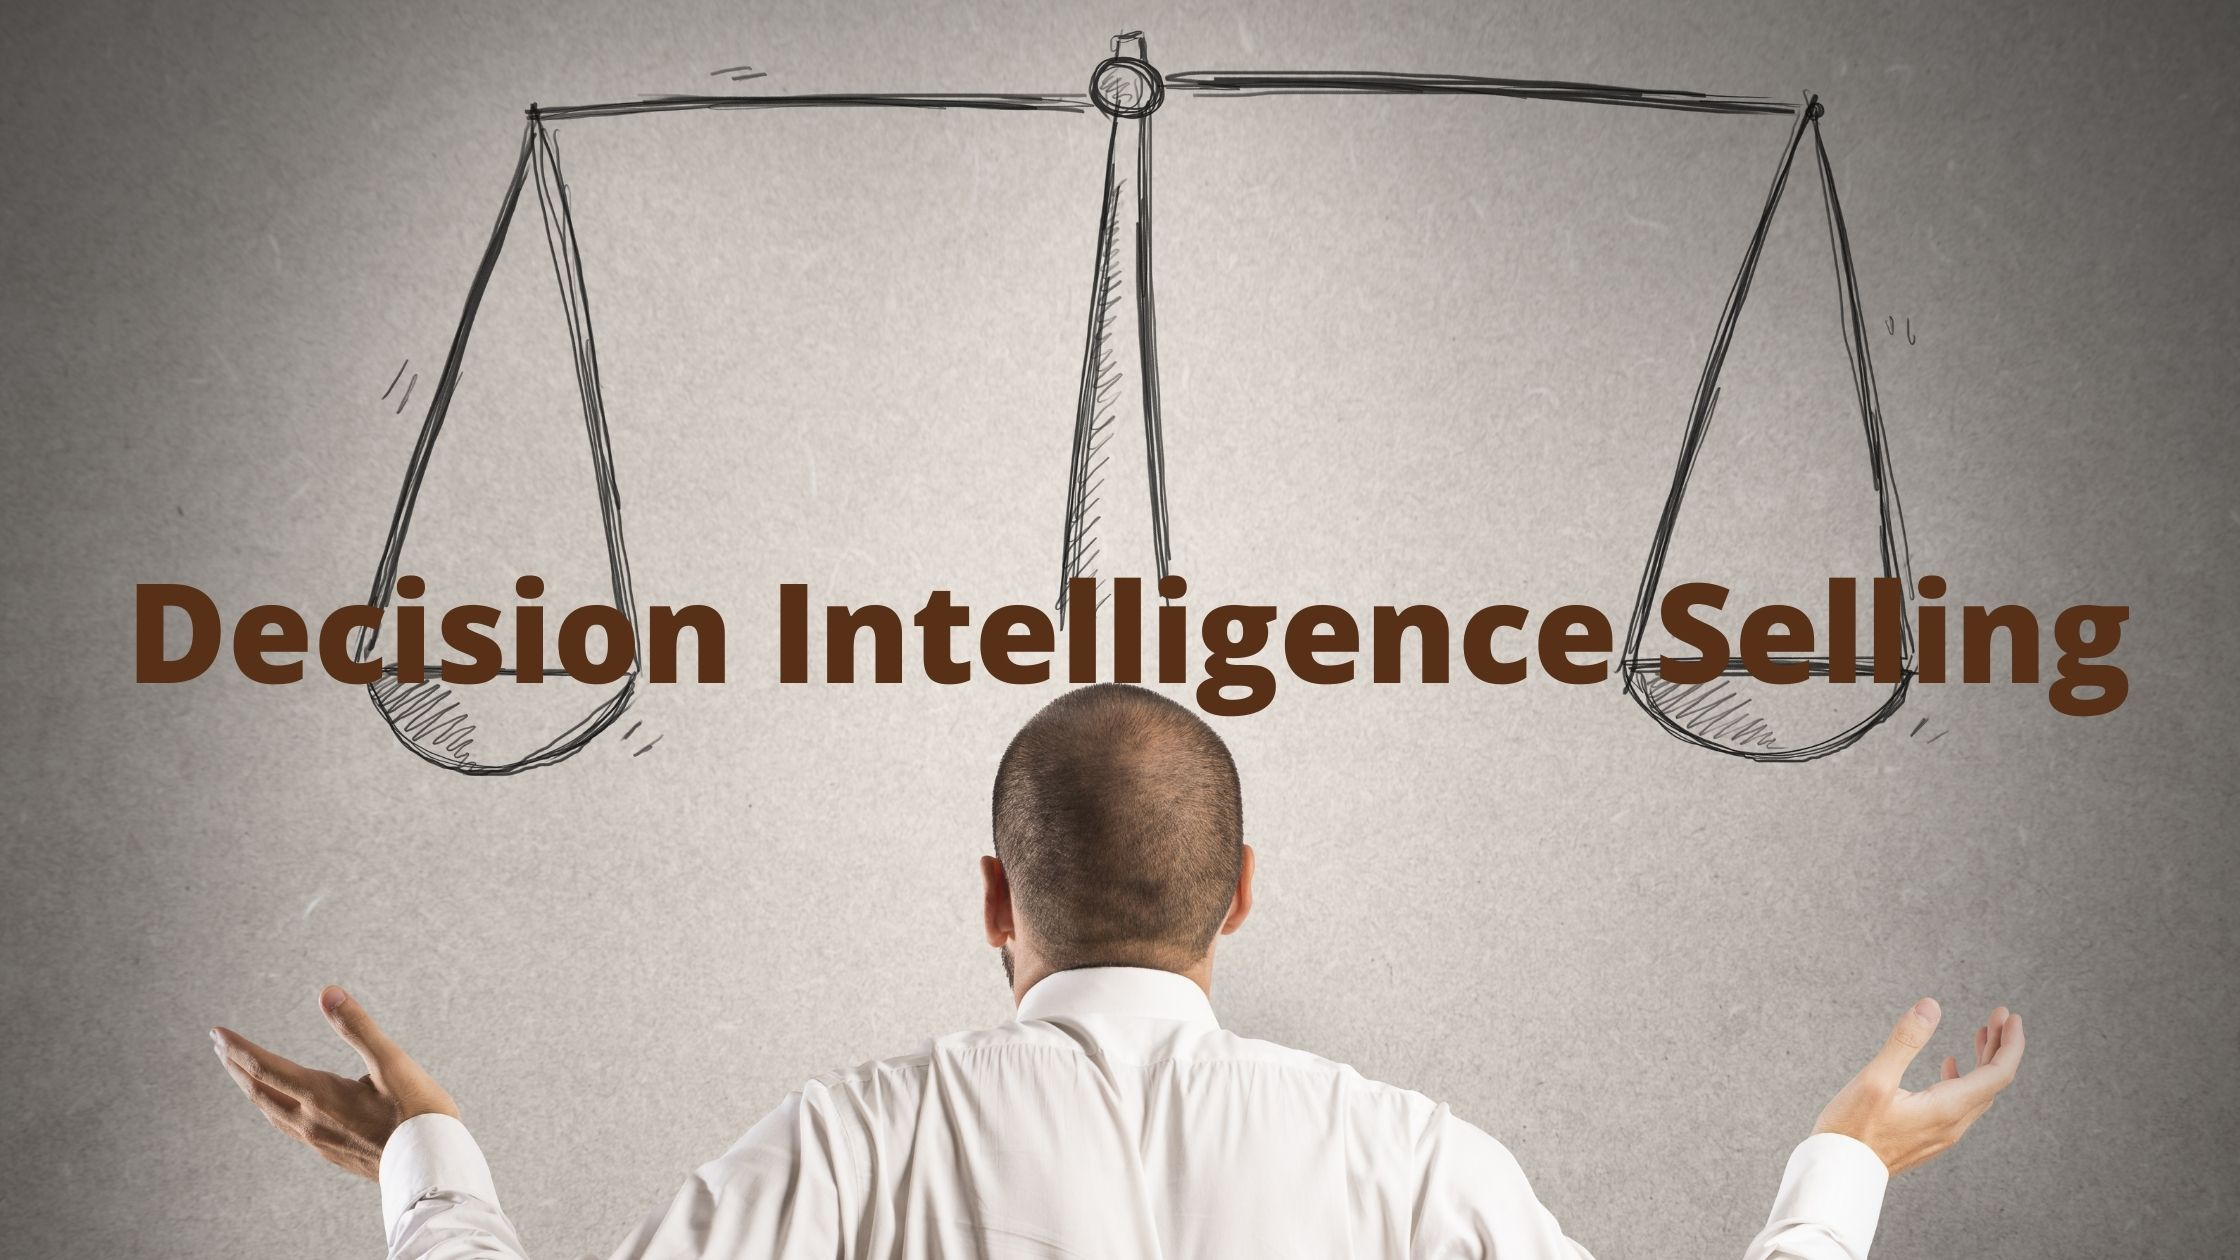 Decision Intelligence Selling